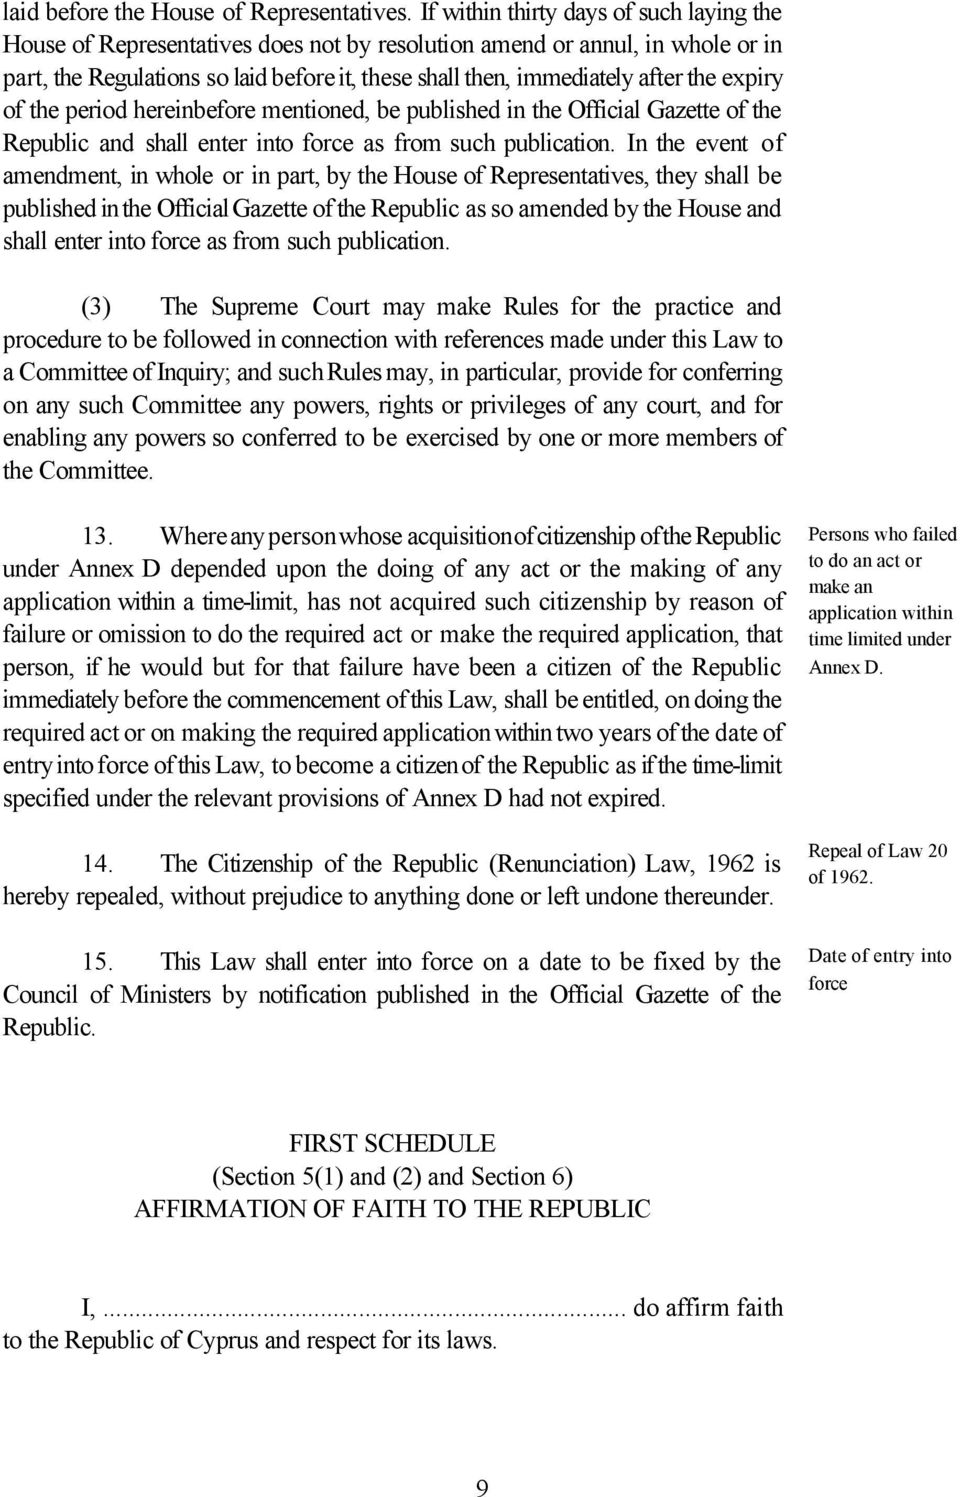 the expiry of the period hereinbefore mentioned, be published in the Official Gazette of the Republic and shall enter into force as from such publication.